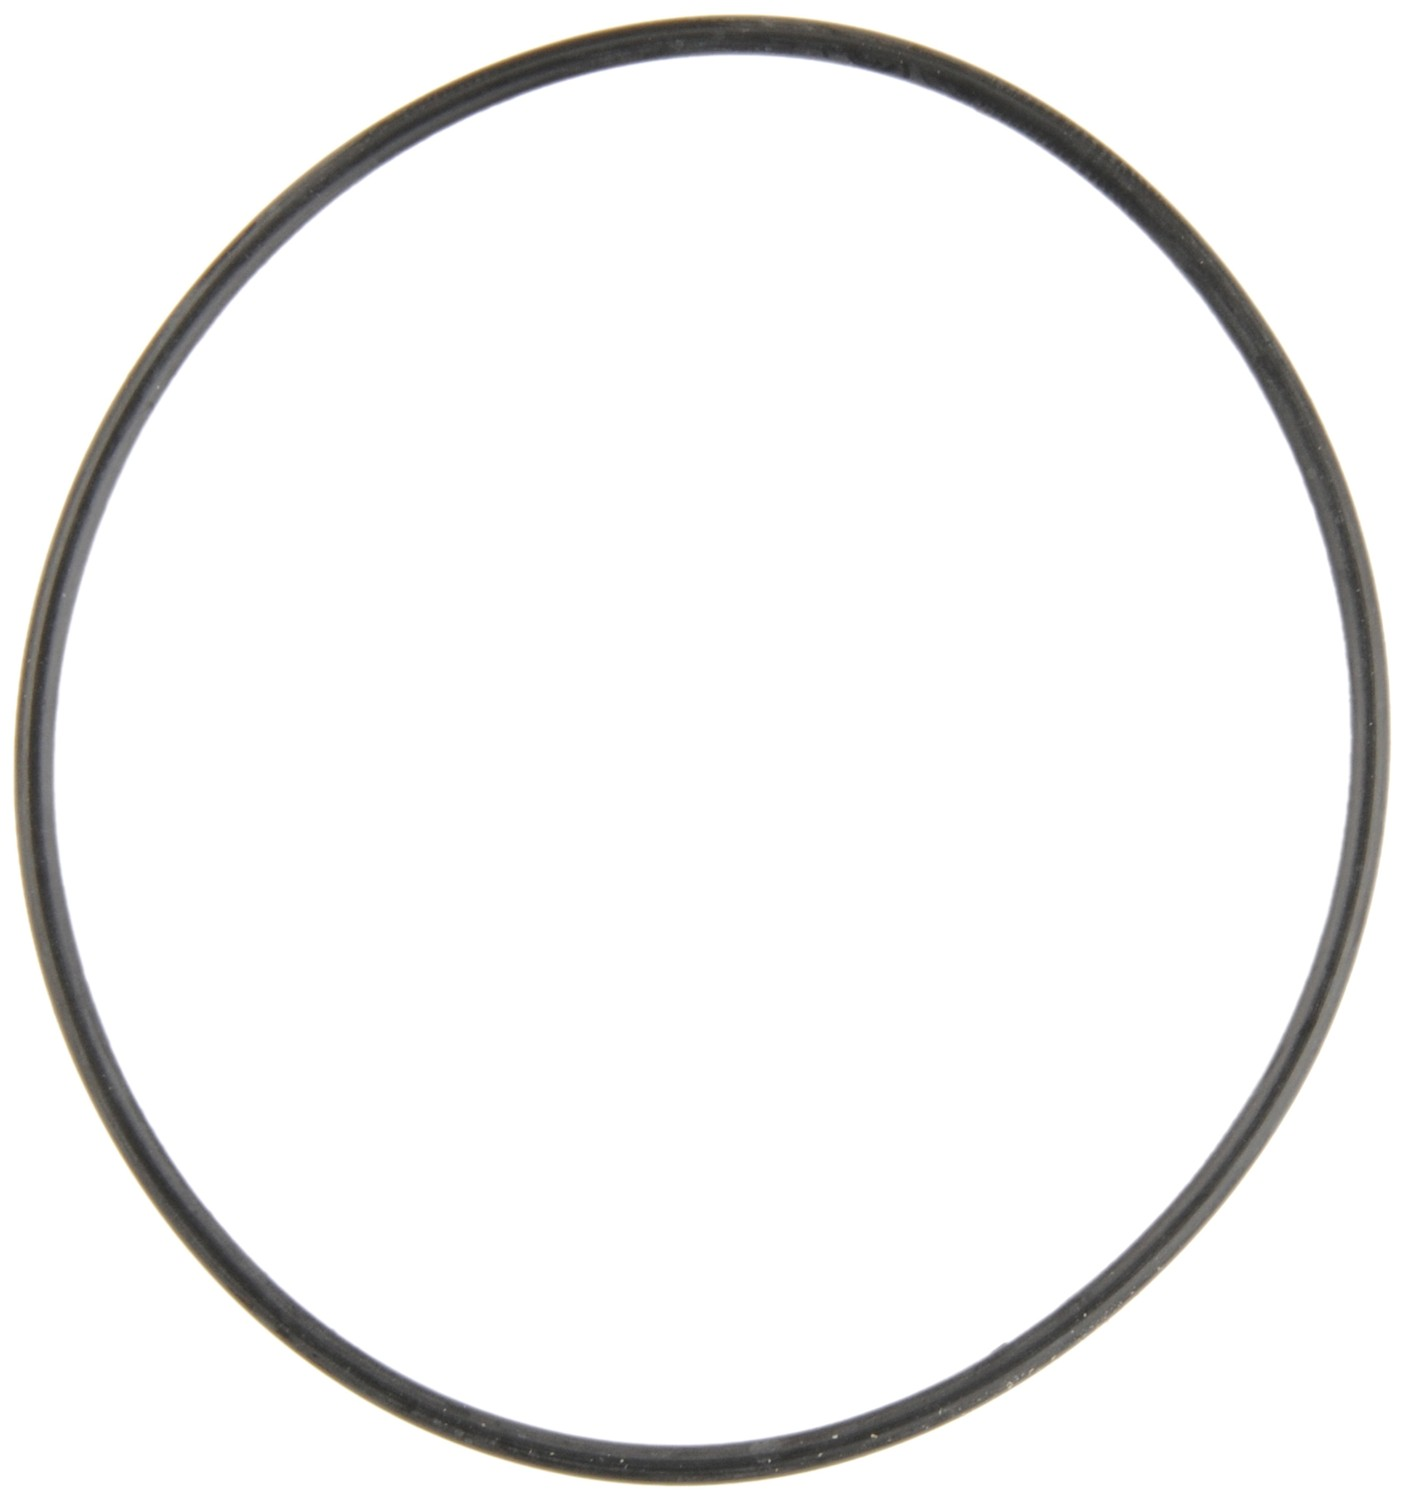 Mahle C Victor Reinz C Thermostat Housing Gasket